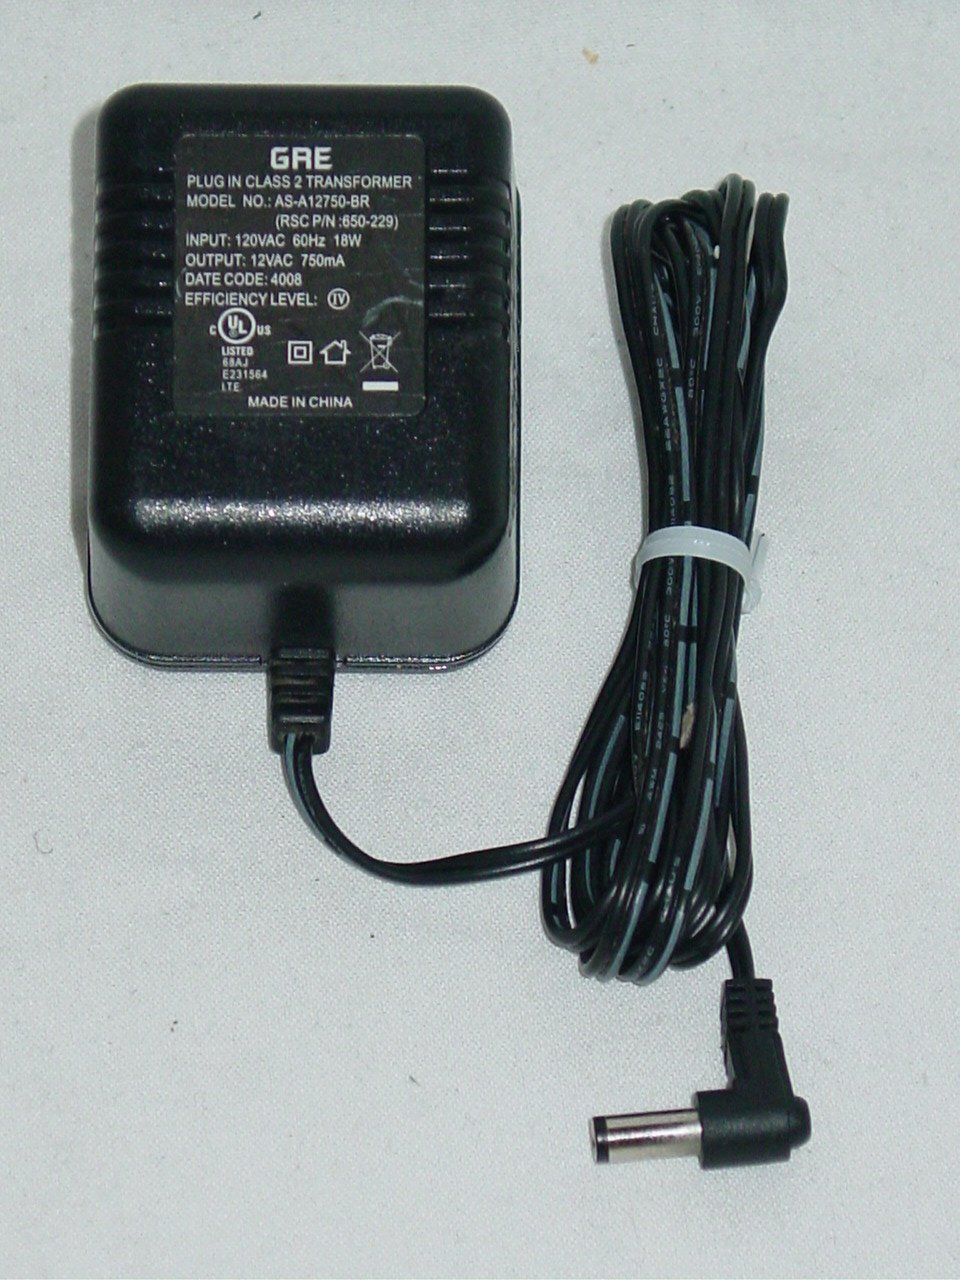 GRE AS-A12750-BR AC Adapter 650-229 12VAC 750mA